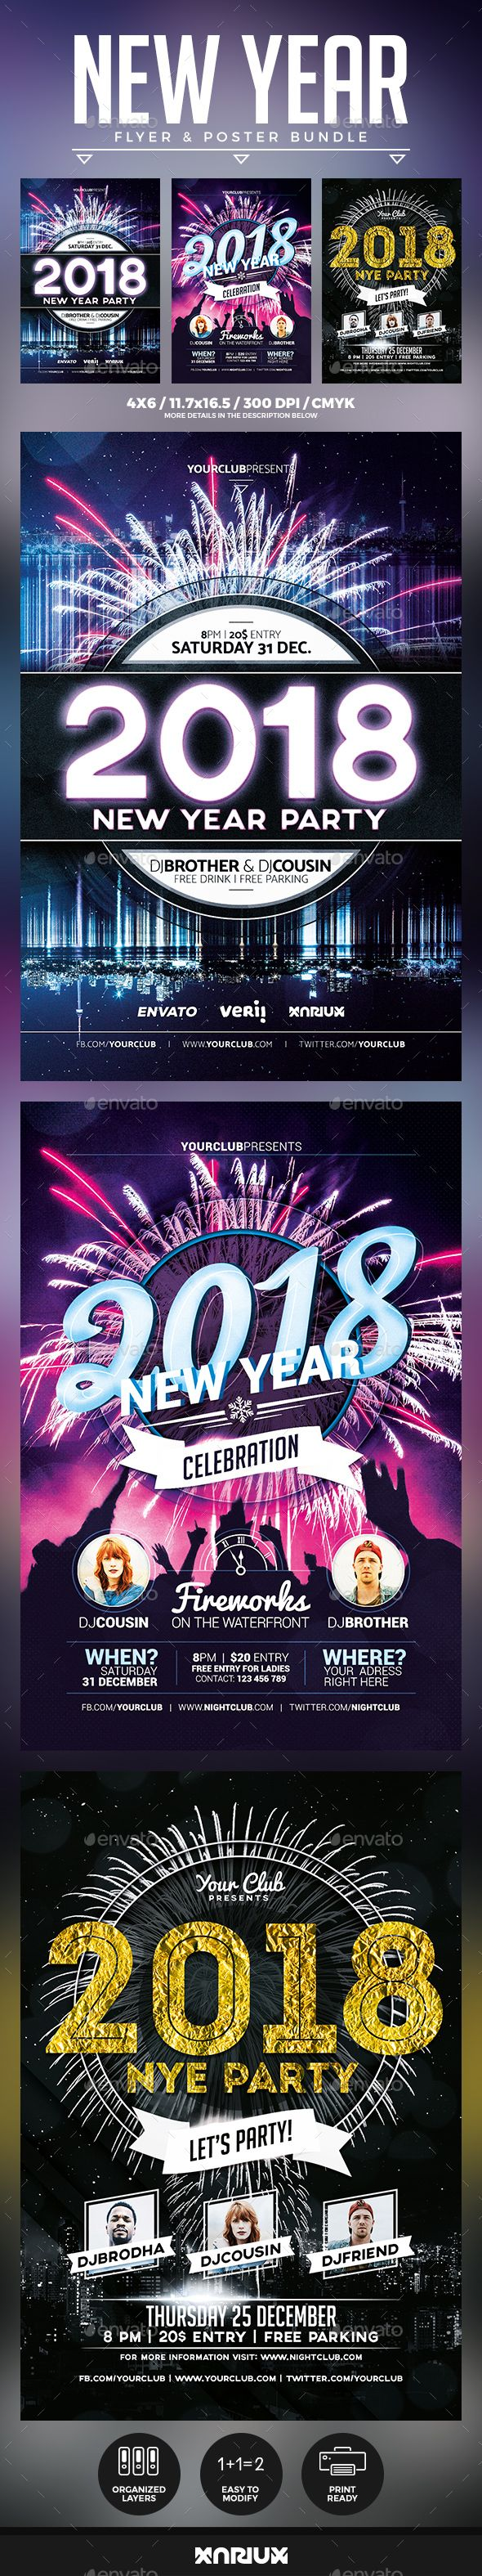 New Year 2018 Flyer and Poster Template PSD Bundle #nye #design